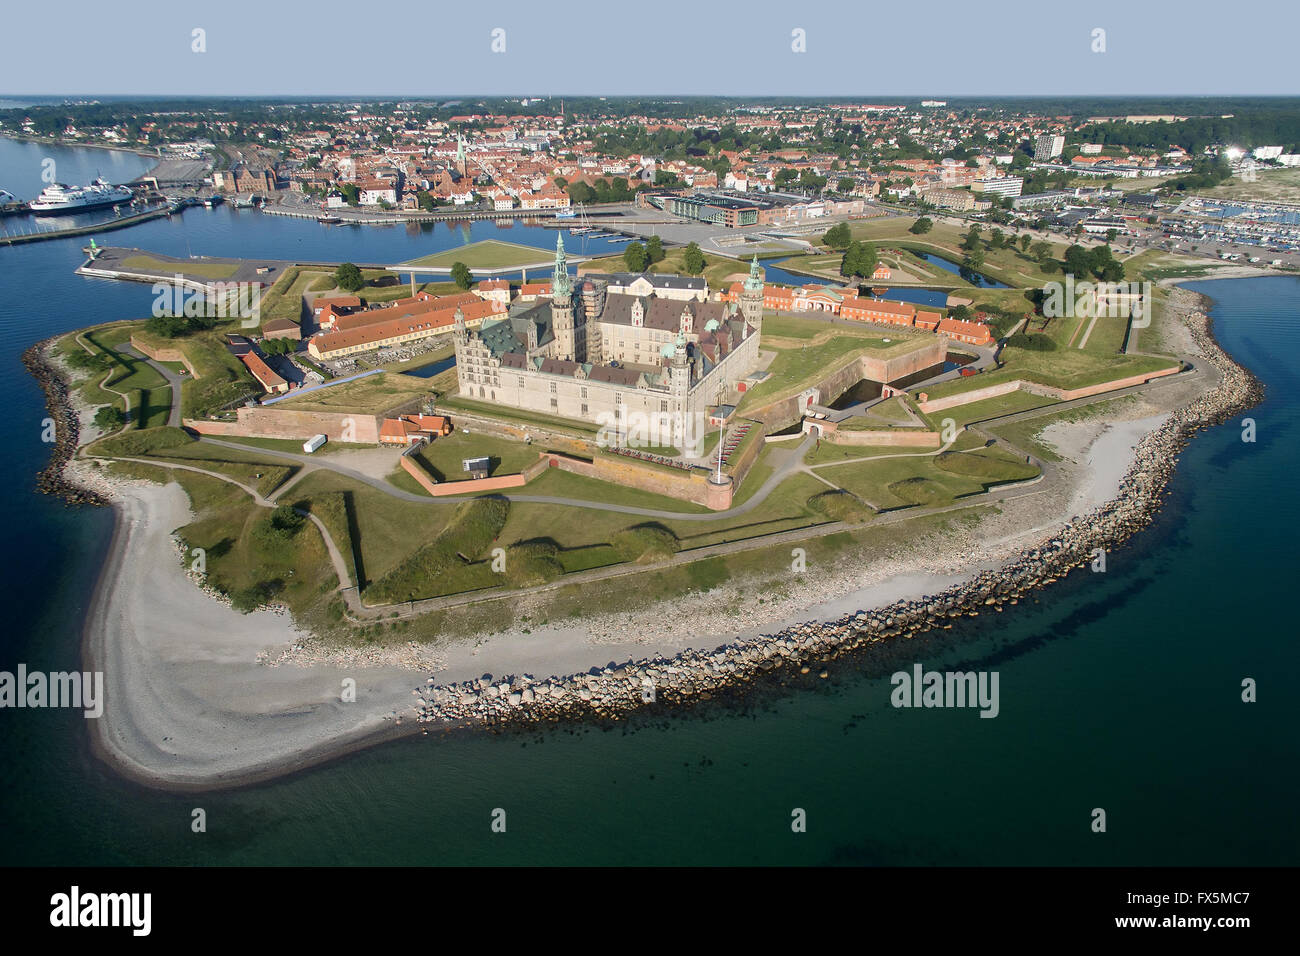 Aerial view of the old castle Kronborg located in Helsingoer, Denmark - Stock Image